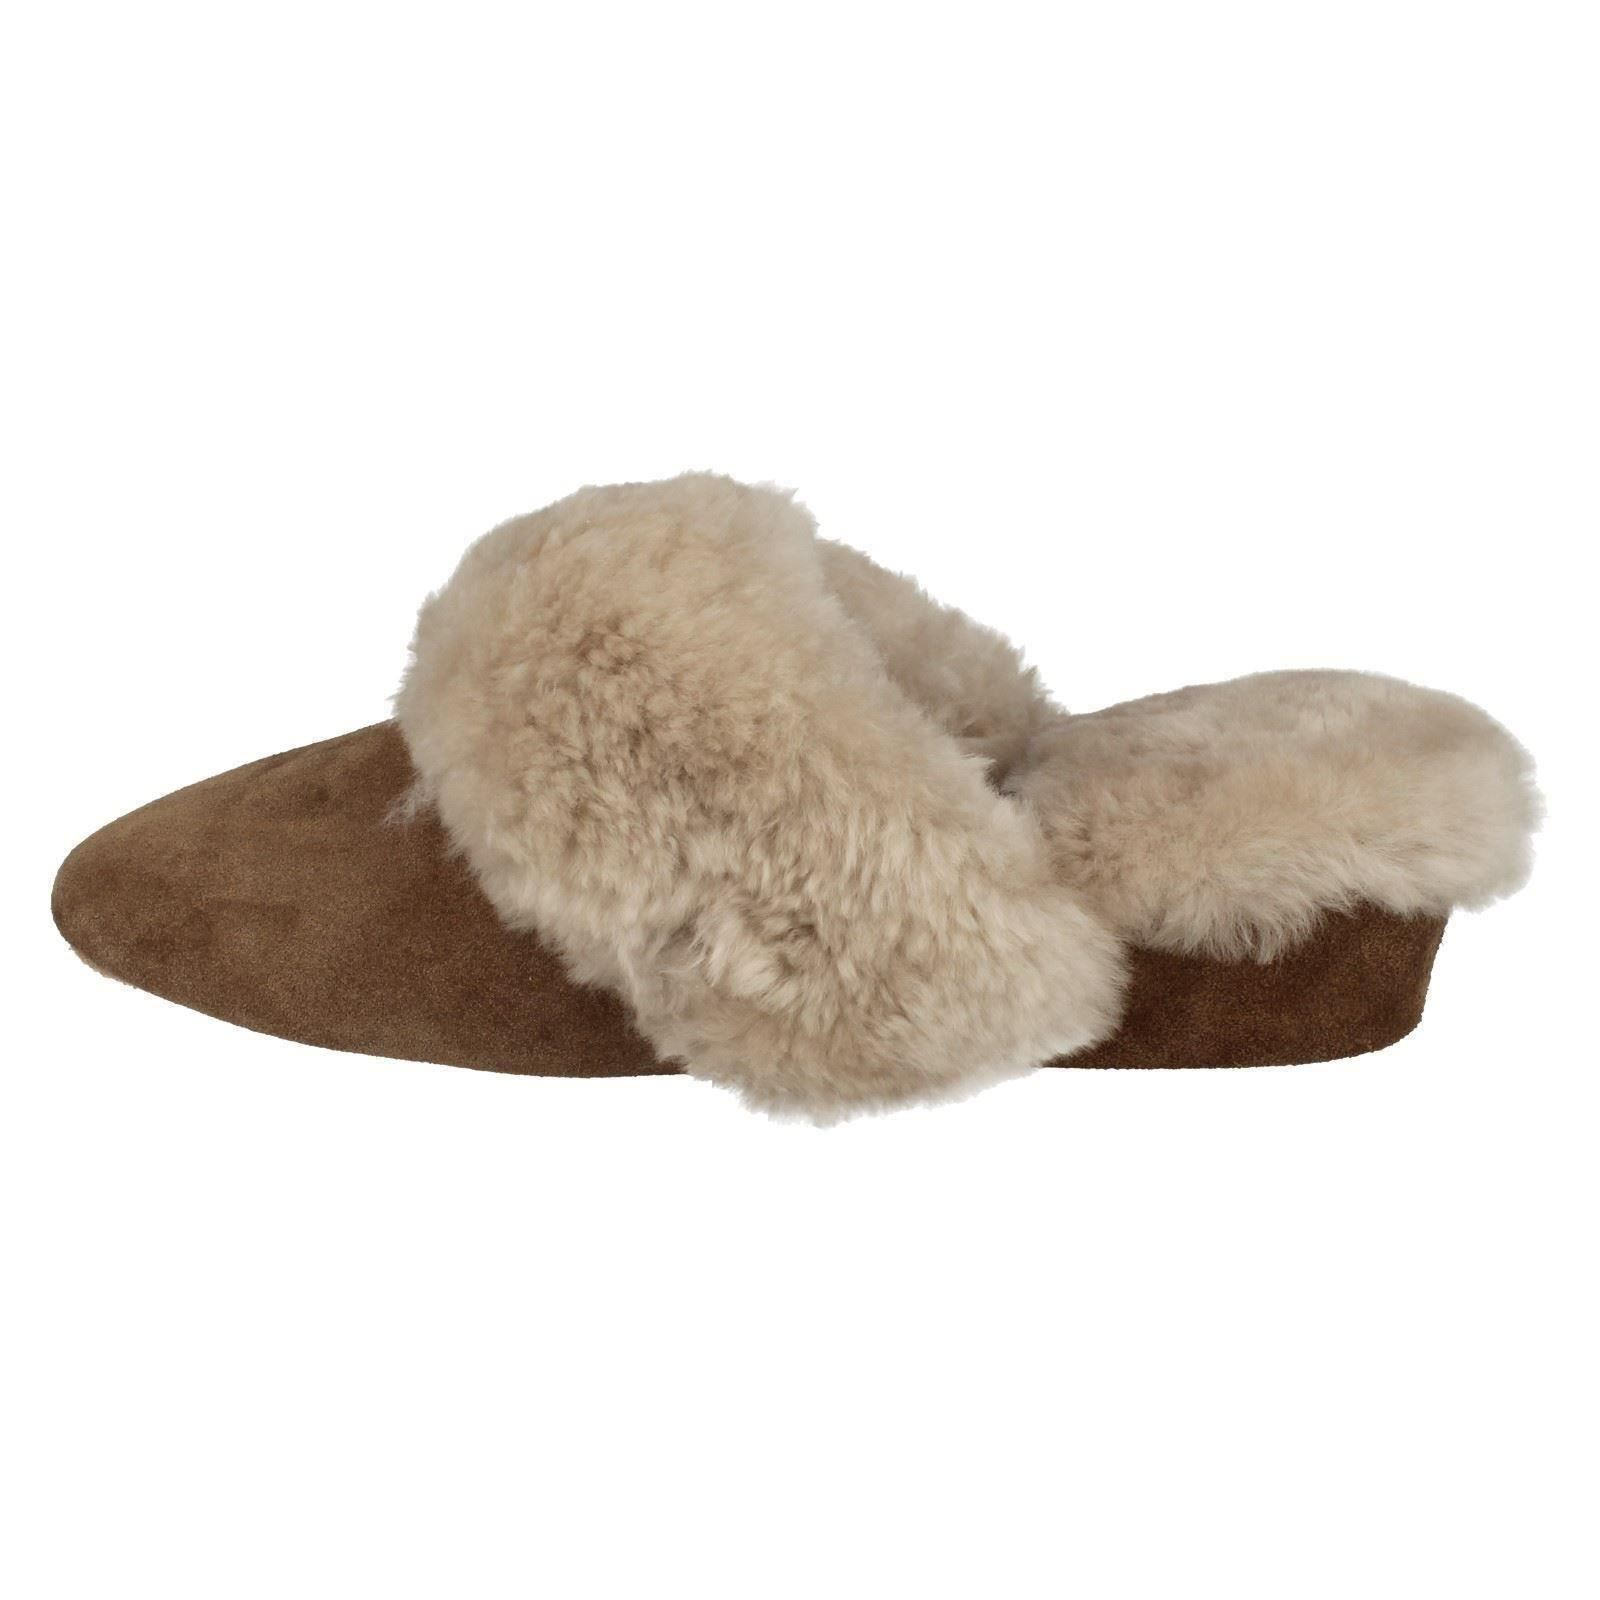 047acfb4a04 Ladies Morlands Sheepskin Leather Wedge Heel Mule Slippers Warm .